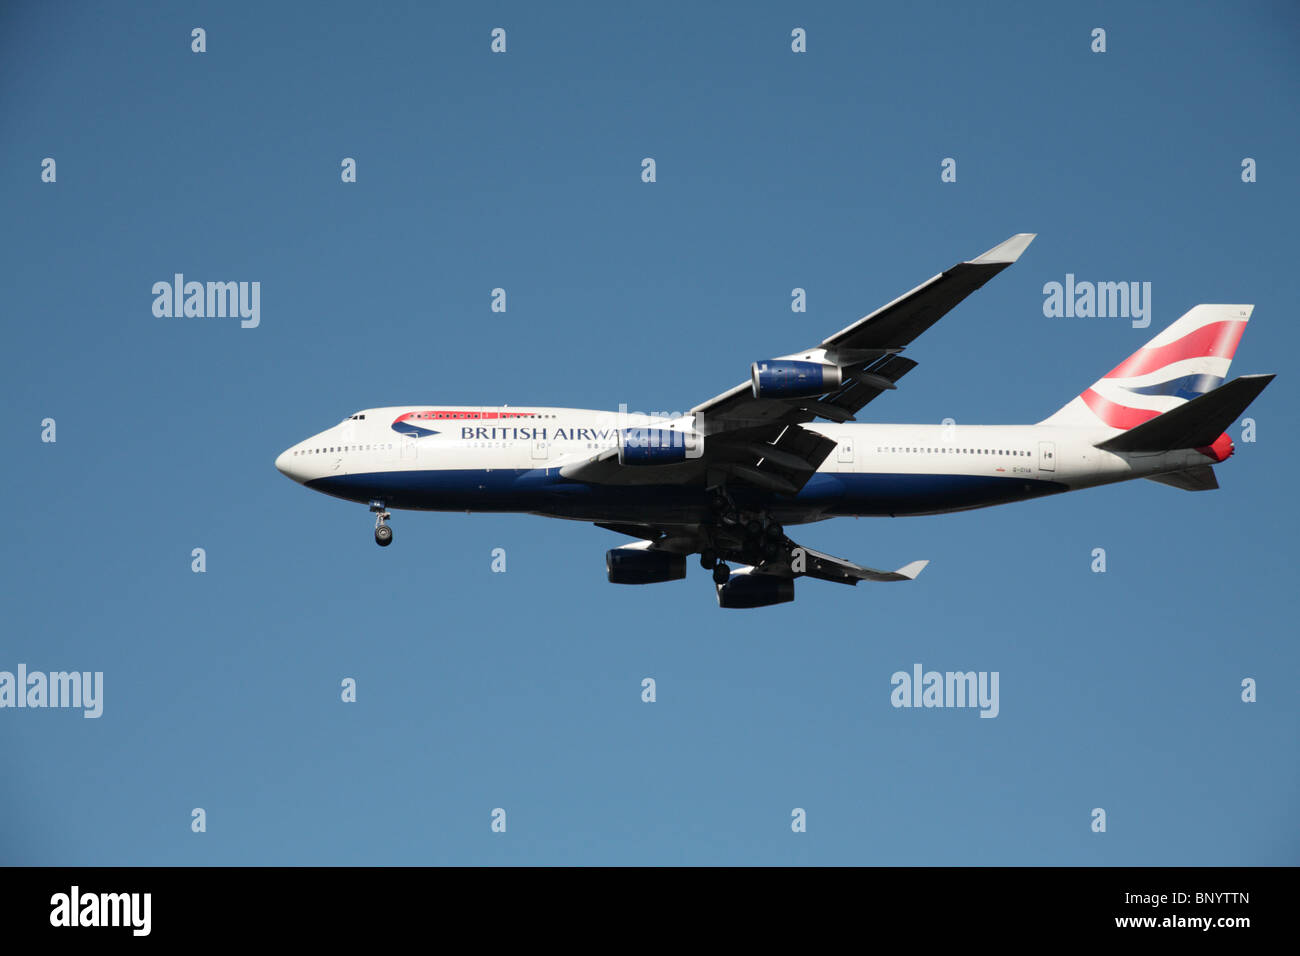 British Airways Boeing 747-436 on final approach to Heathrow Airport - Stock Image